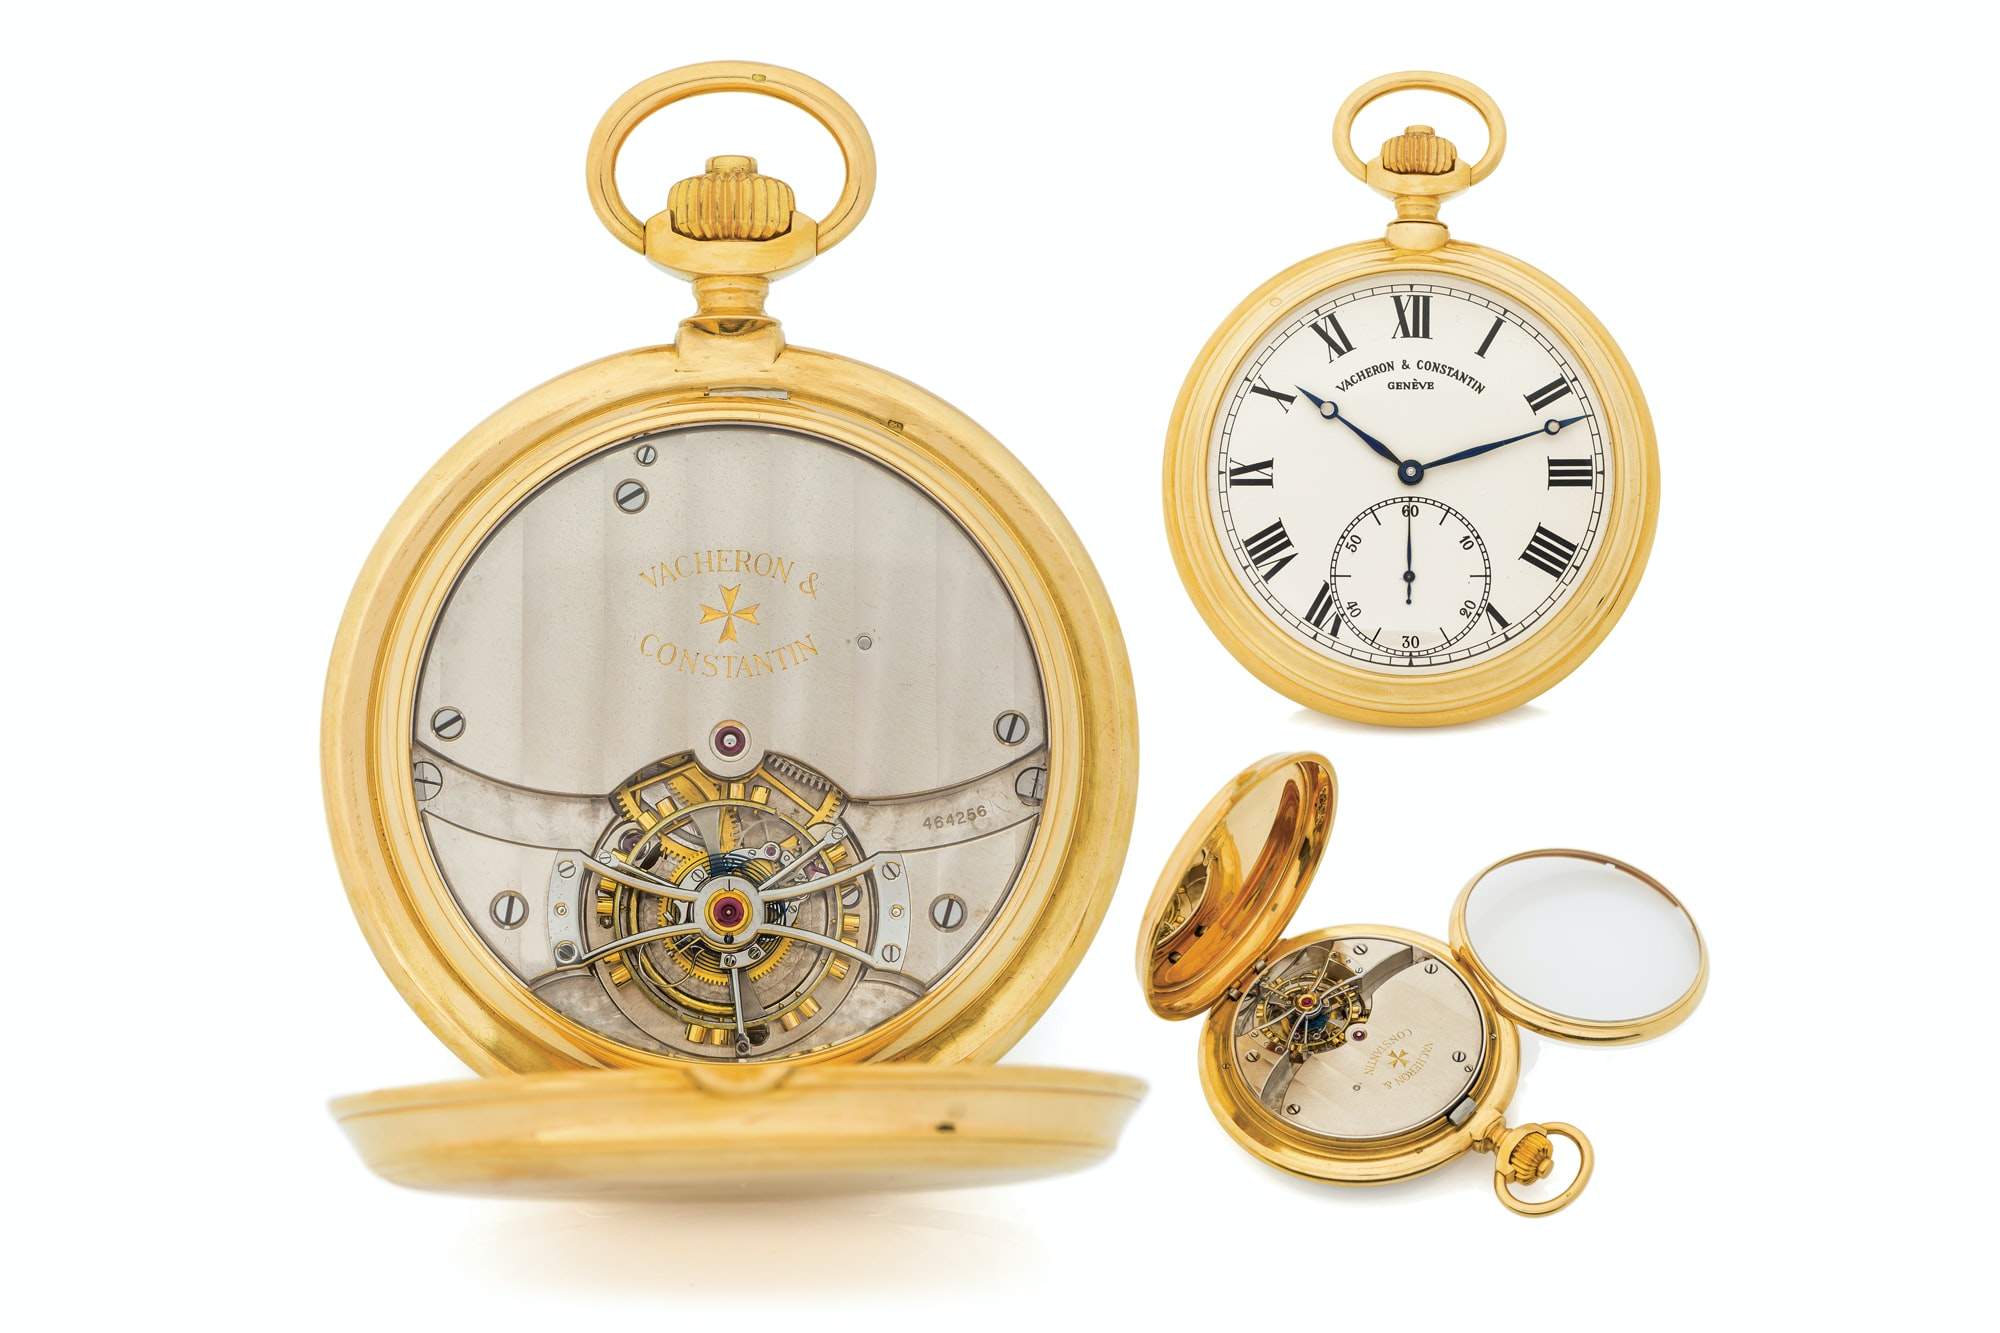 Vacheron Observatory Pocket Tourbillon 2 Seven Pocket Watches That Will Make You Forget Wristwatches (And Wonder Why They've Gotten So Pricey) From The Antiquorum 'Important Modern & Vintage Timepieces' Auction Seven Pocket Watches That Will Make You Forget Wristwatches (And Wonder Why They've Gotten So Pricey) From The Antiquorum 'Important Modern & Vintage Timepieces' Auction c2